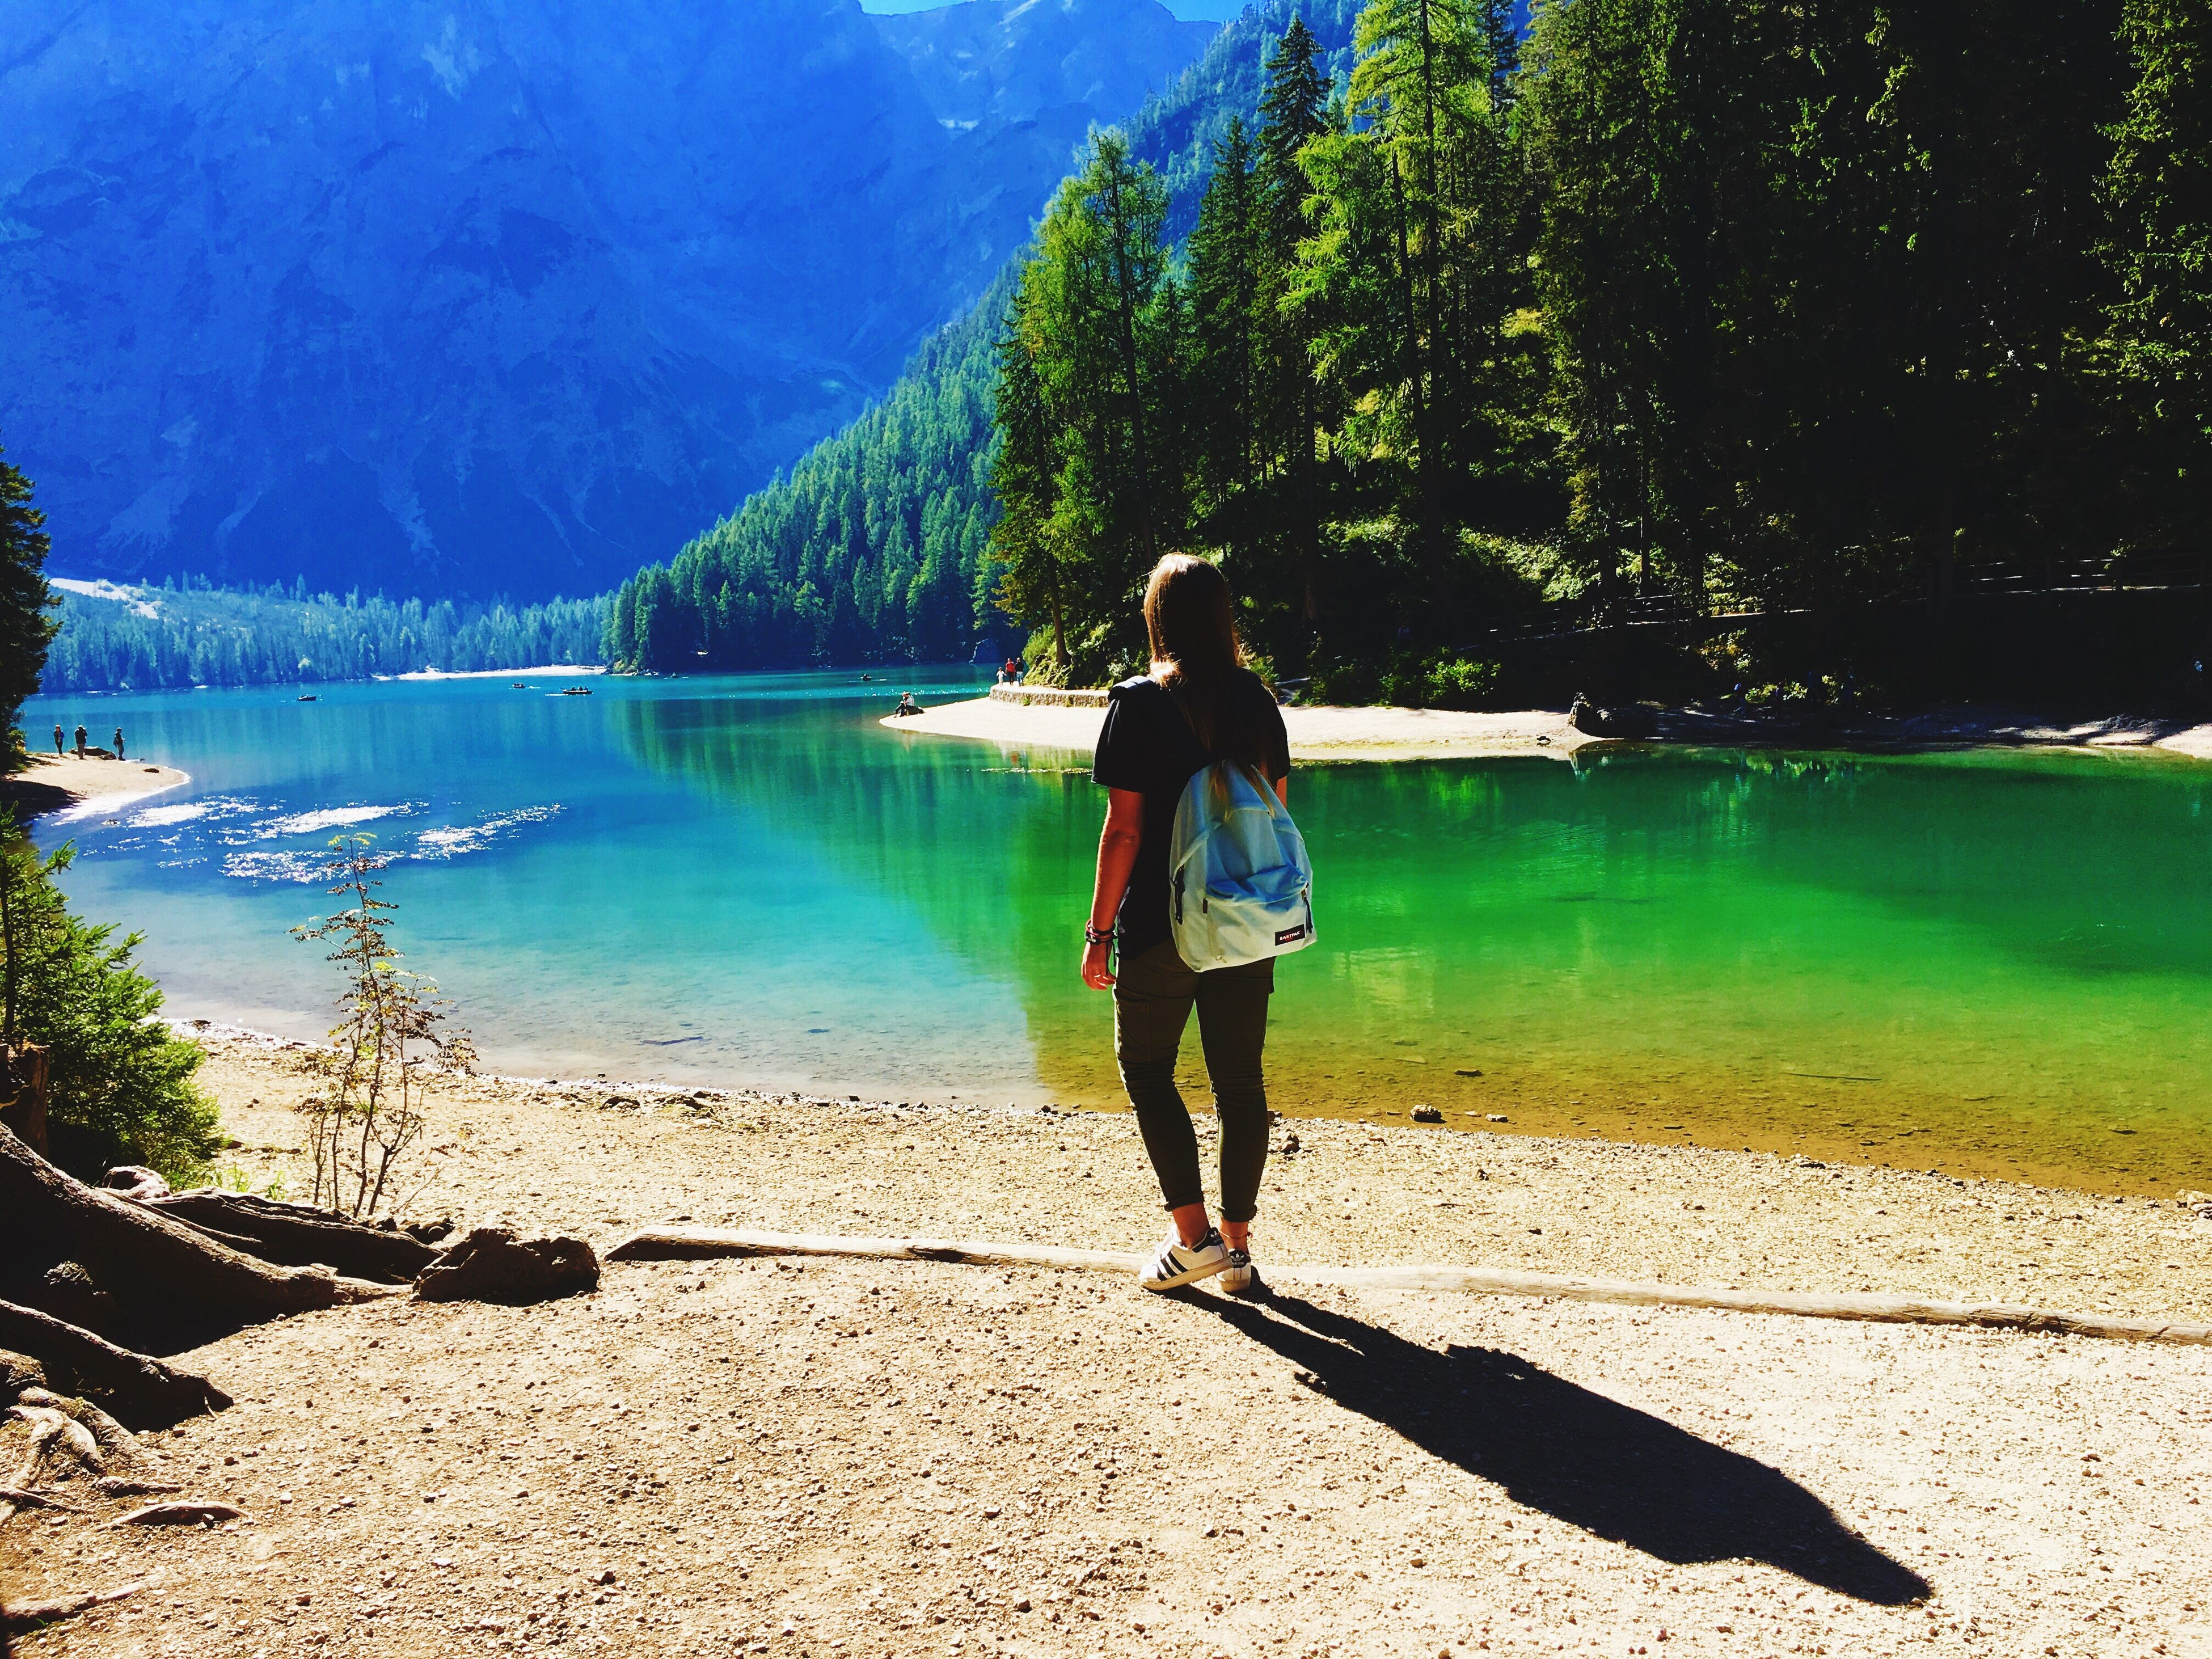 water, shadow, full length, rear view, lake, sunlight, tranquil scene, tree, tranquility, scenics, mountain, nature, calm, lakeside, beauty in nature, blue, solitude, alone, green color, getting away from it all, vacations, escapism, outdoors, majestic, day, weekend activities, standing water